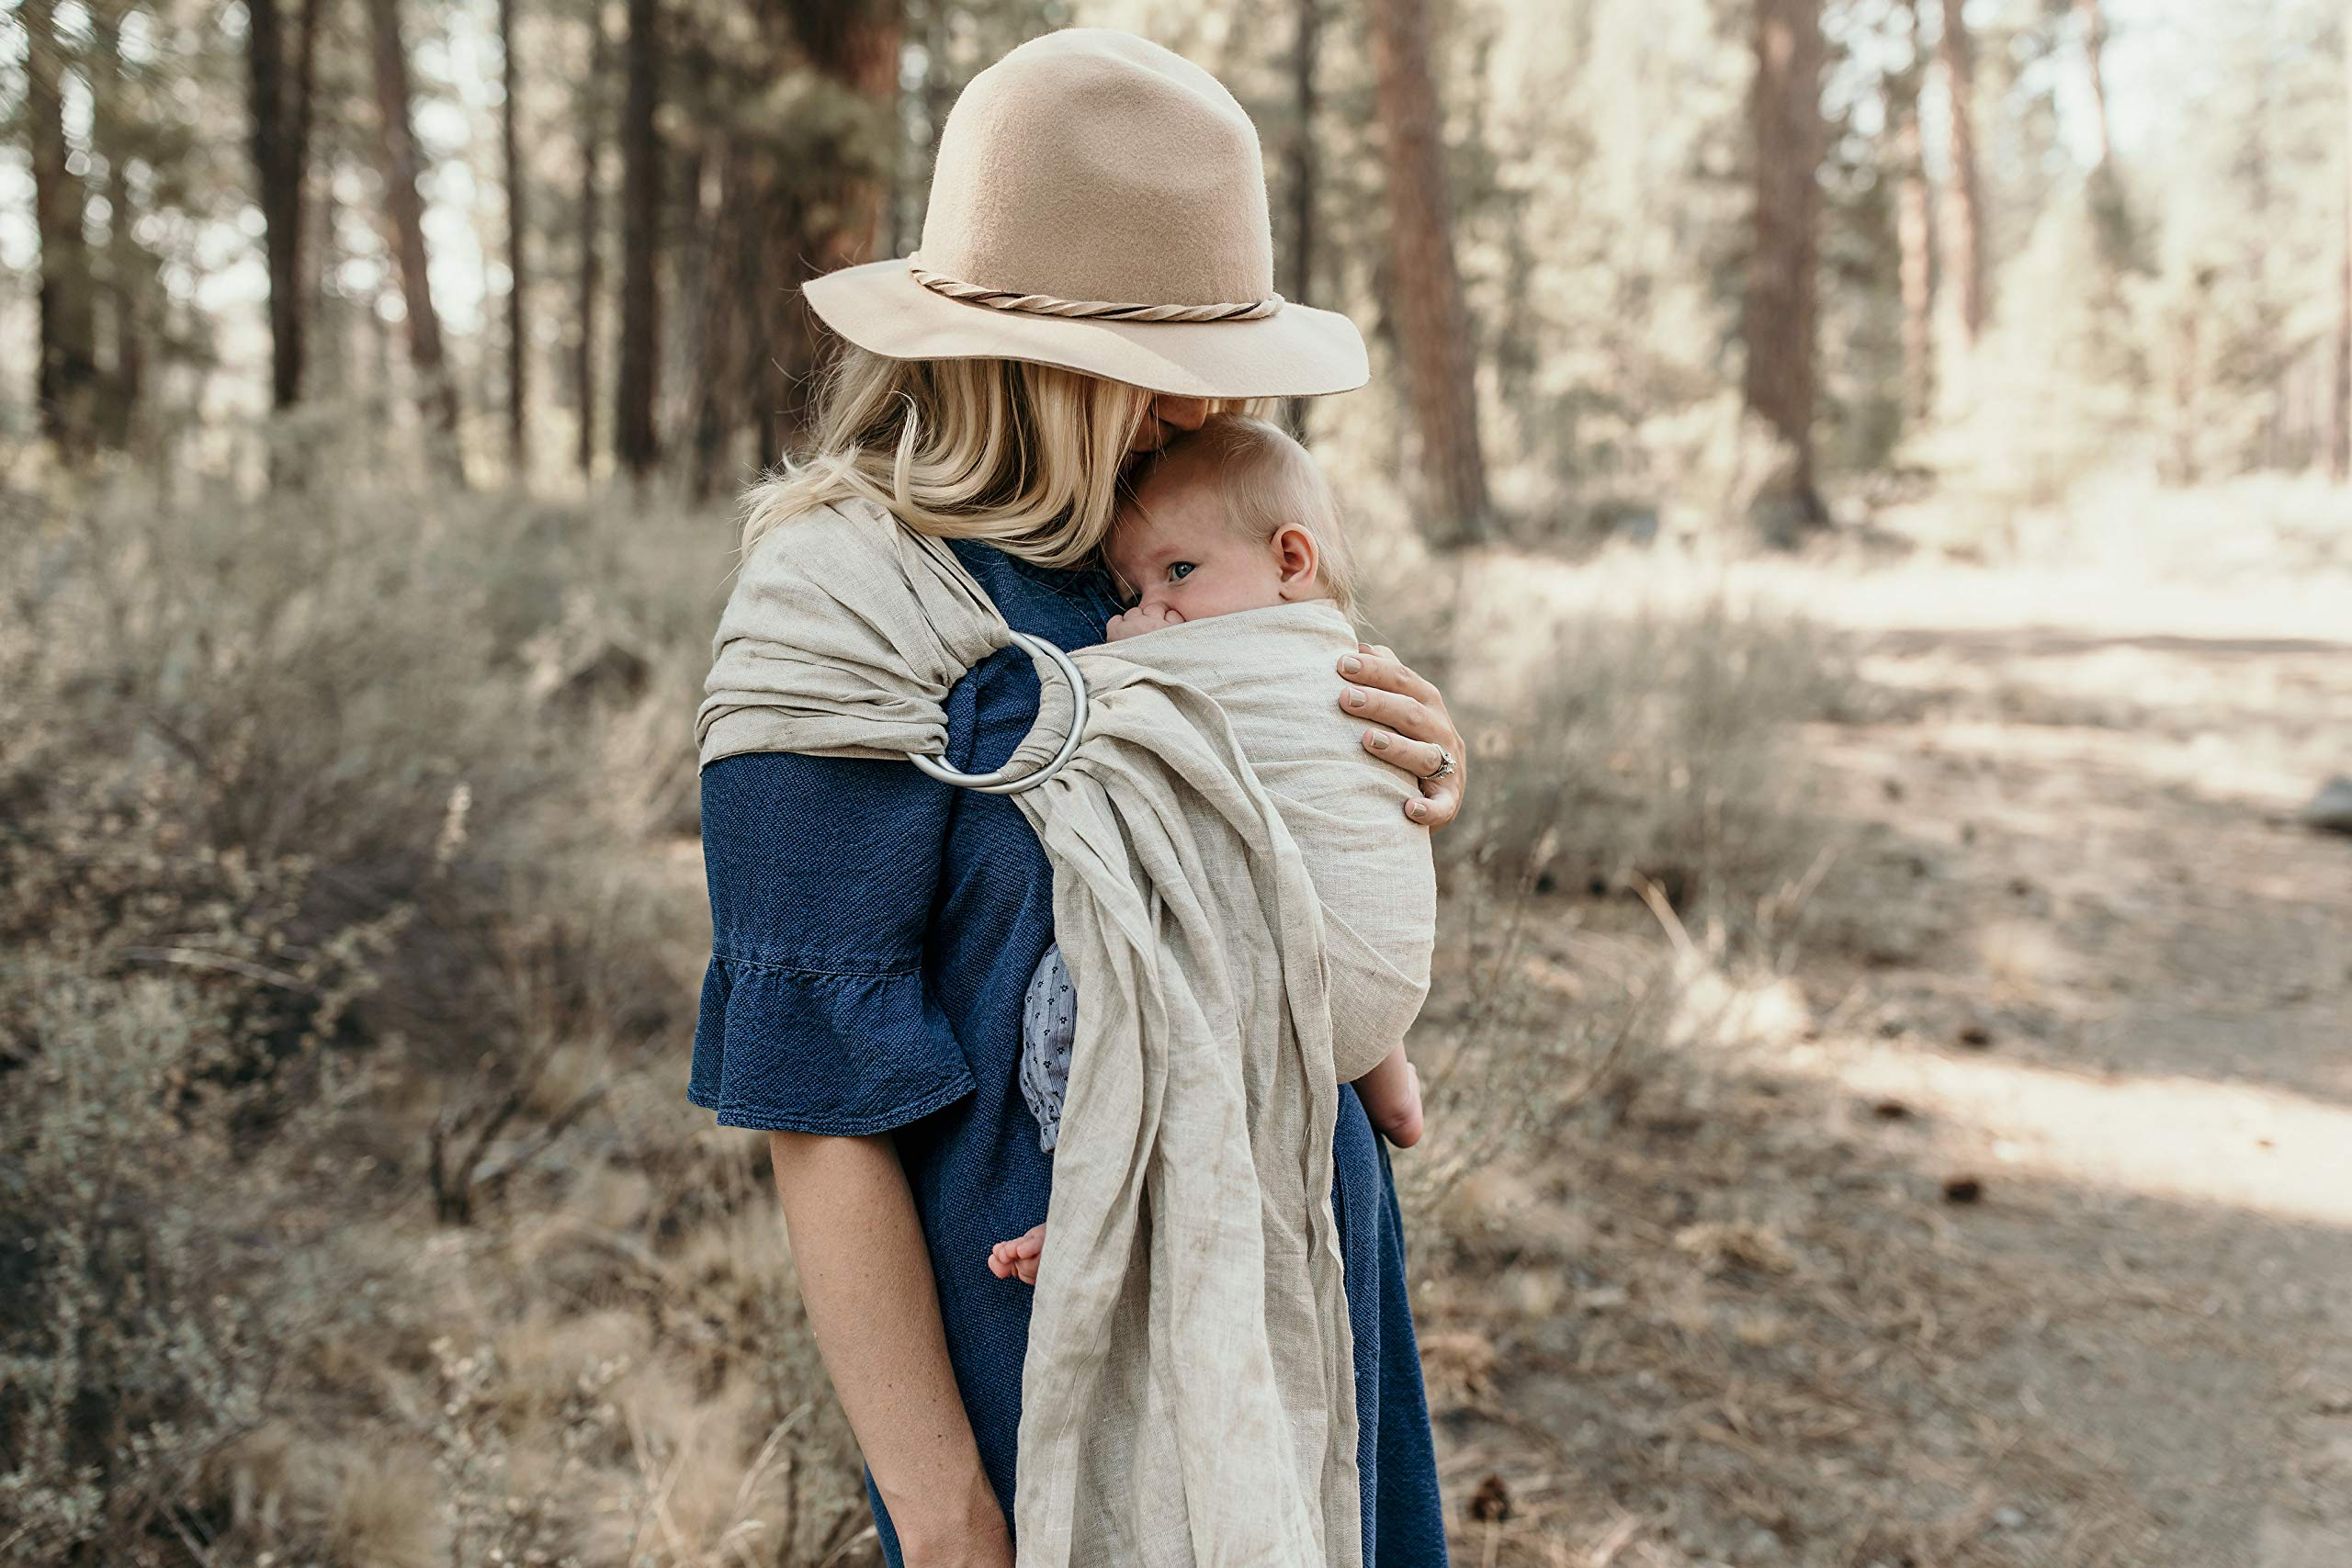 Hip Baby Wrap Linen Ring Sling Baby Carrier for Infants and Toddlers (Oat) Hip Baby Wrap Our slings are all fair trade and eco-friendly. Made with beautiful 100% linen, breathable fabric and with top quality solid aluminum sling rings. For babies 8 - 35 lbs. 3